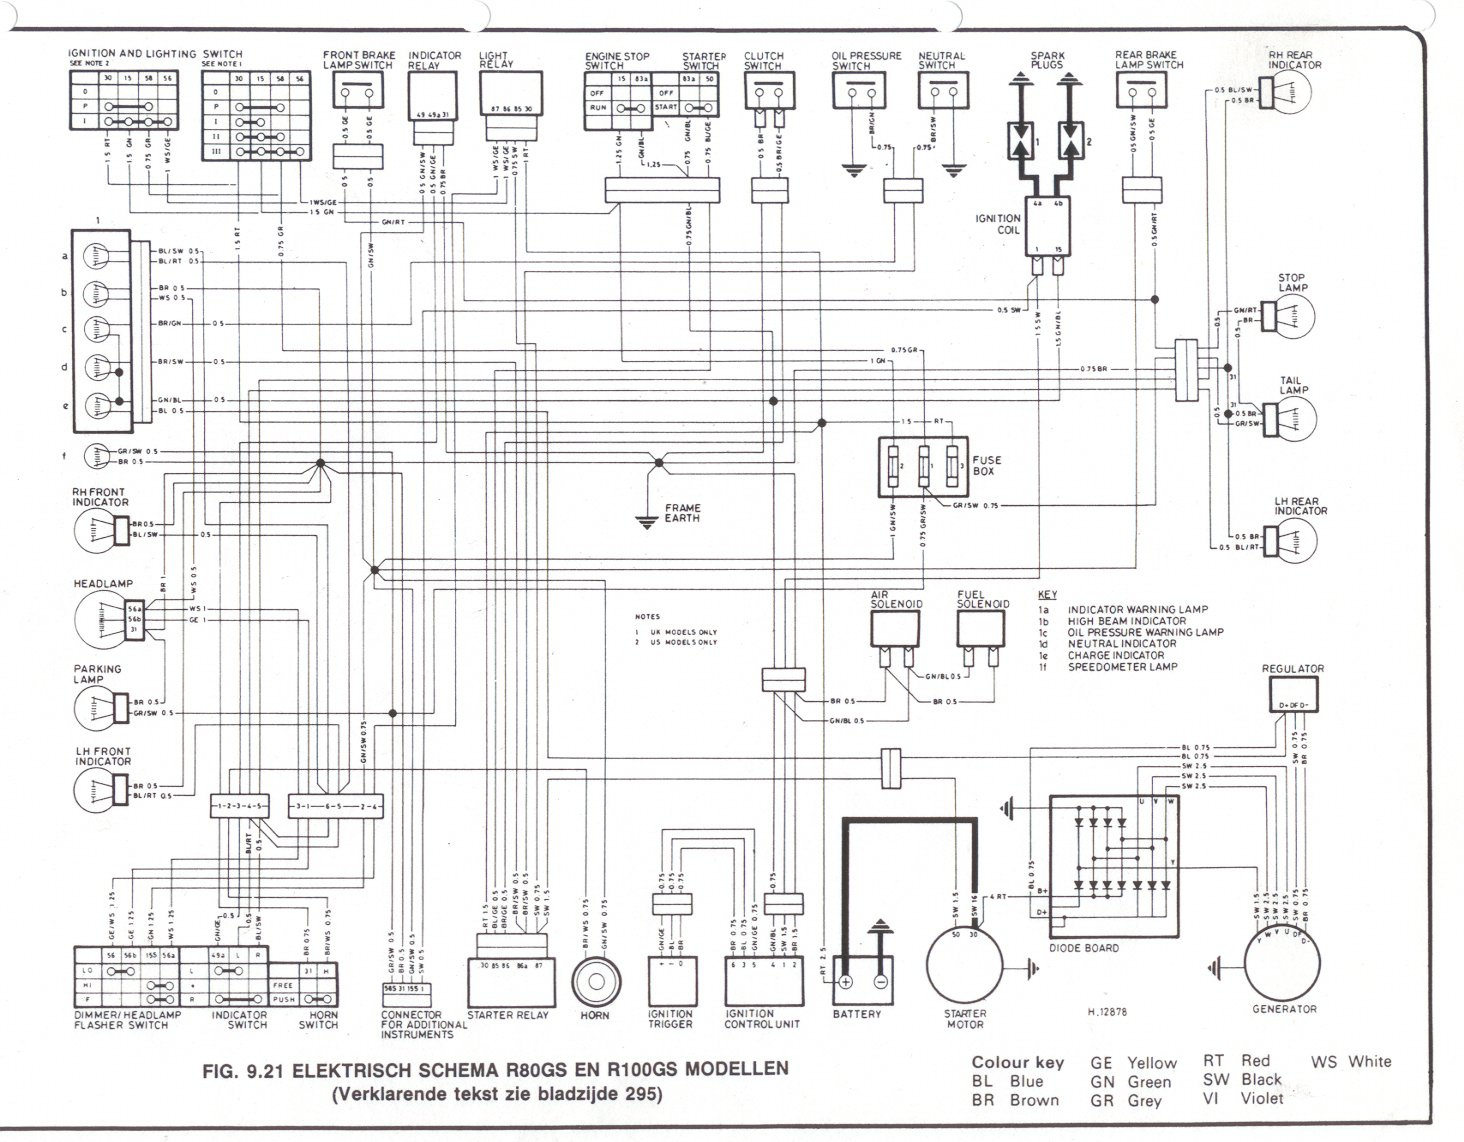 R80 100GS Schematic bmw r100 info thiel org za bmw r100rs gauge wiring diagram at n-0.co